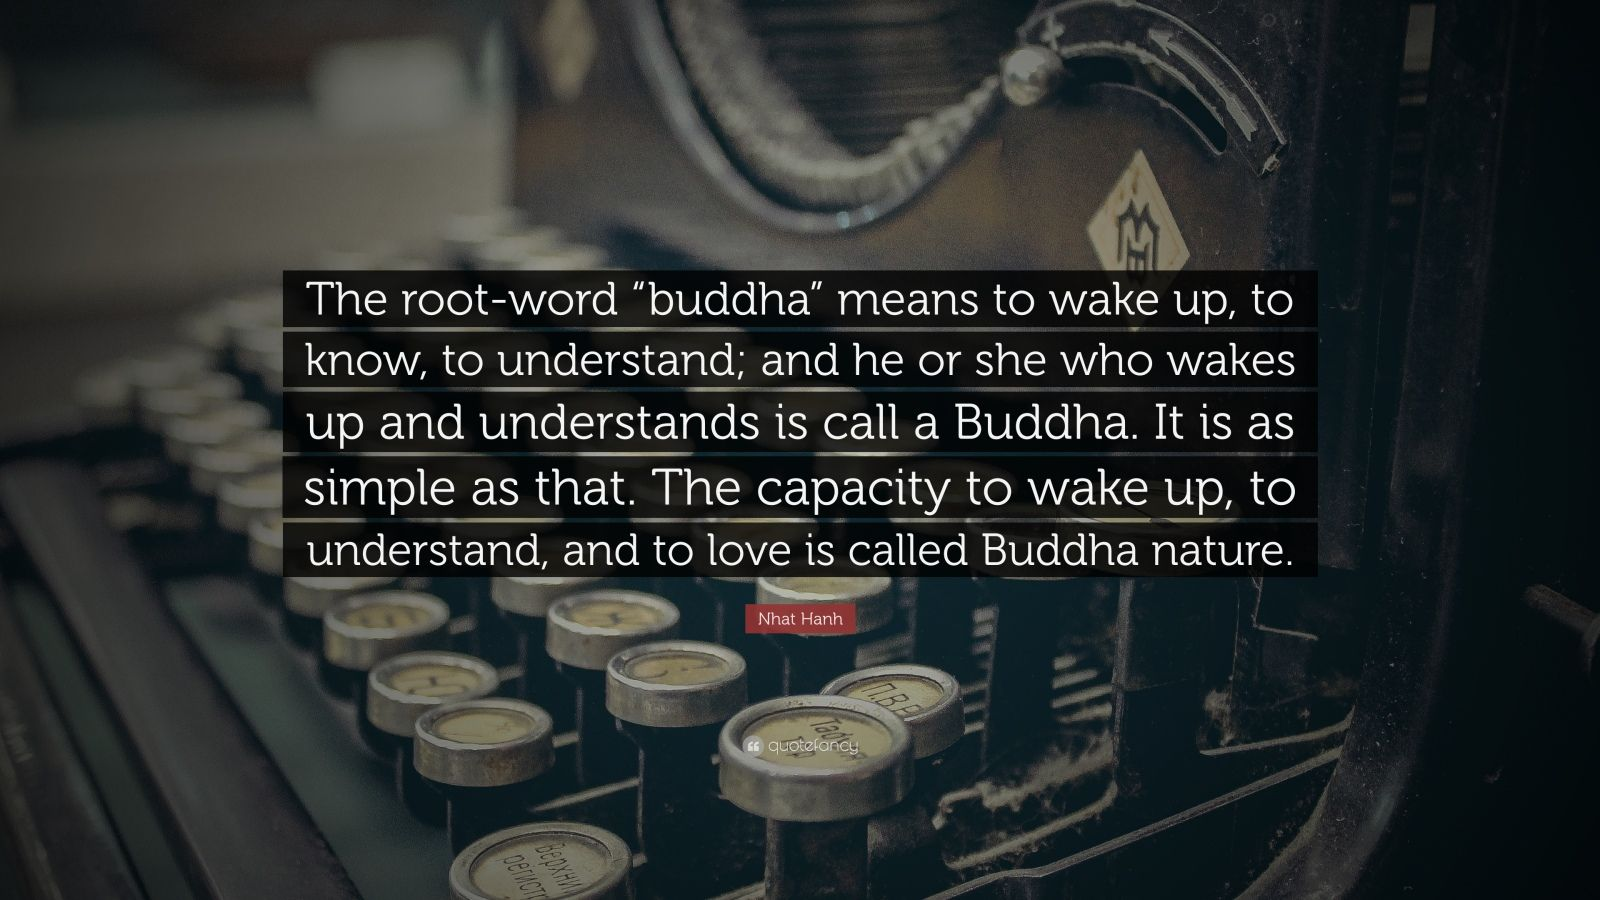 """Nhat Hanh Quote: """"The root-word """"buddha"""" means to wake up, to know, to understand; and he or she who wakes up and understands is call a Buddha. It is as simple as that. The capacity to wake up, to understand, and to love is called Buddha nature."""""""